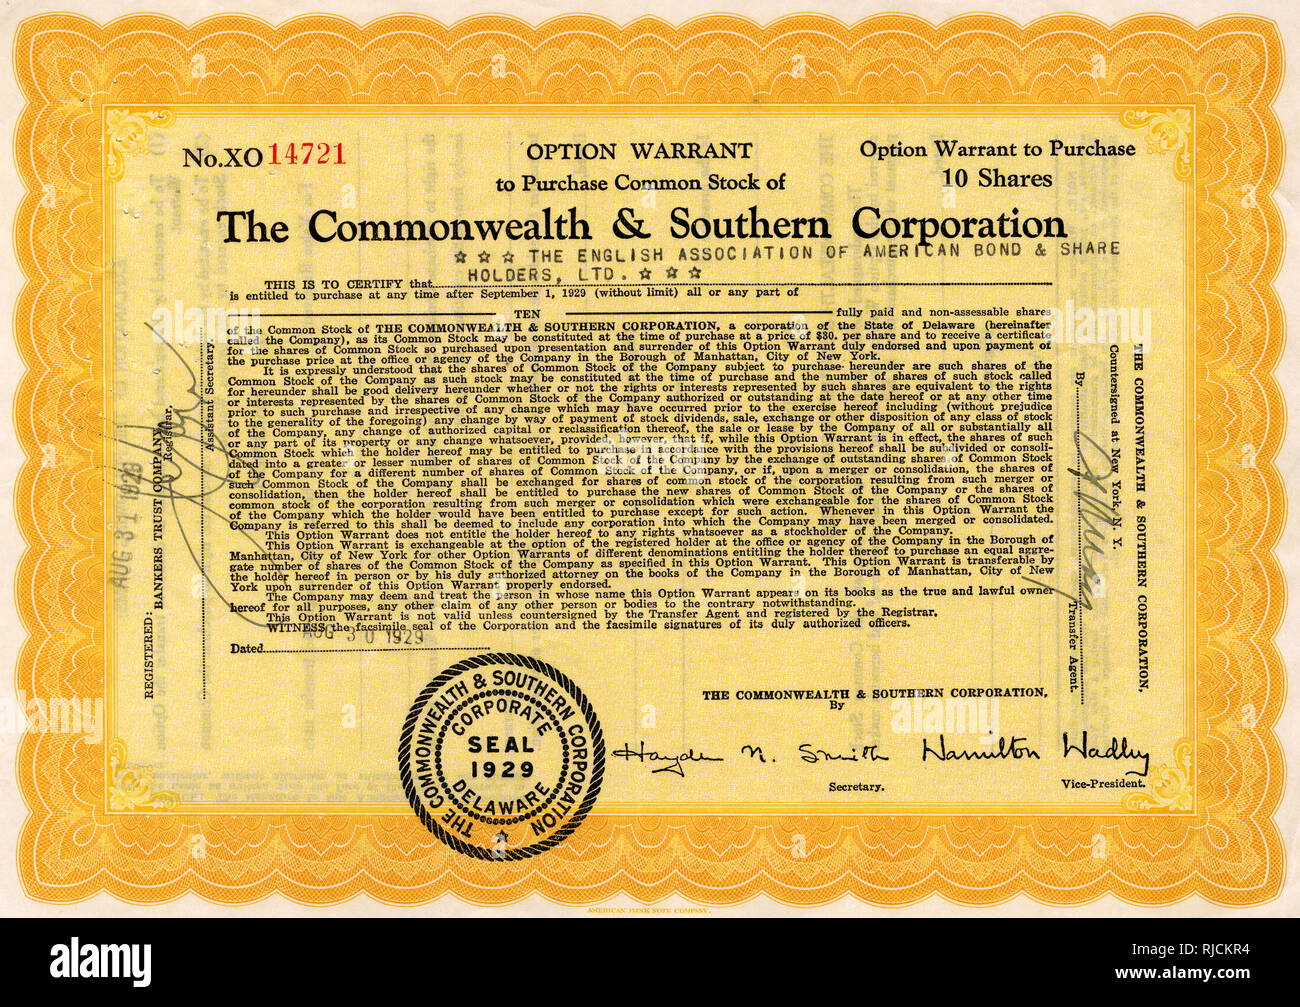 Option warrant to purchase common stock of The Commonwealth & Southern Corporation, Delaware, USA -- 10 shares, dated 31 August 1929. - Stock Image